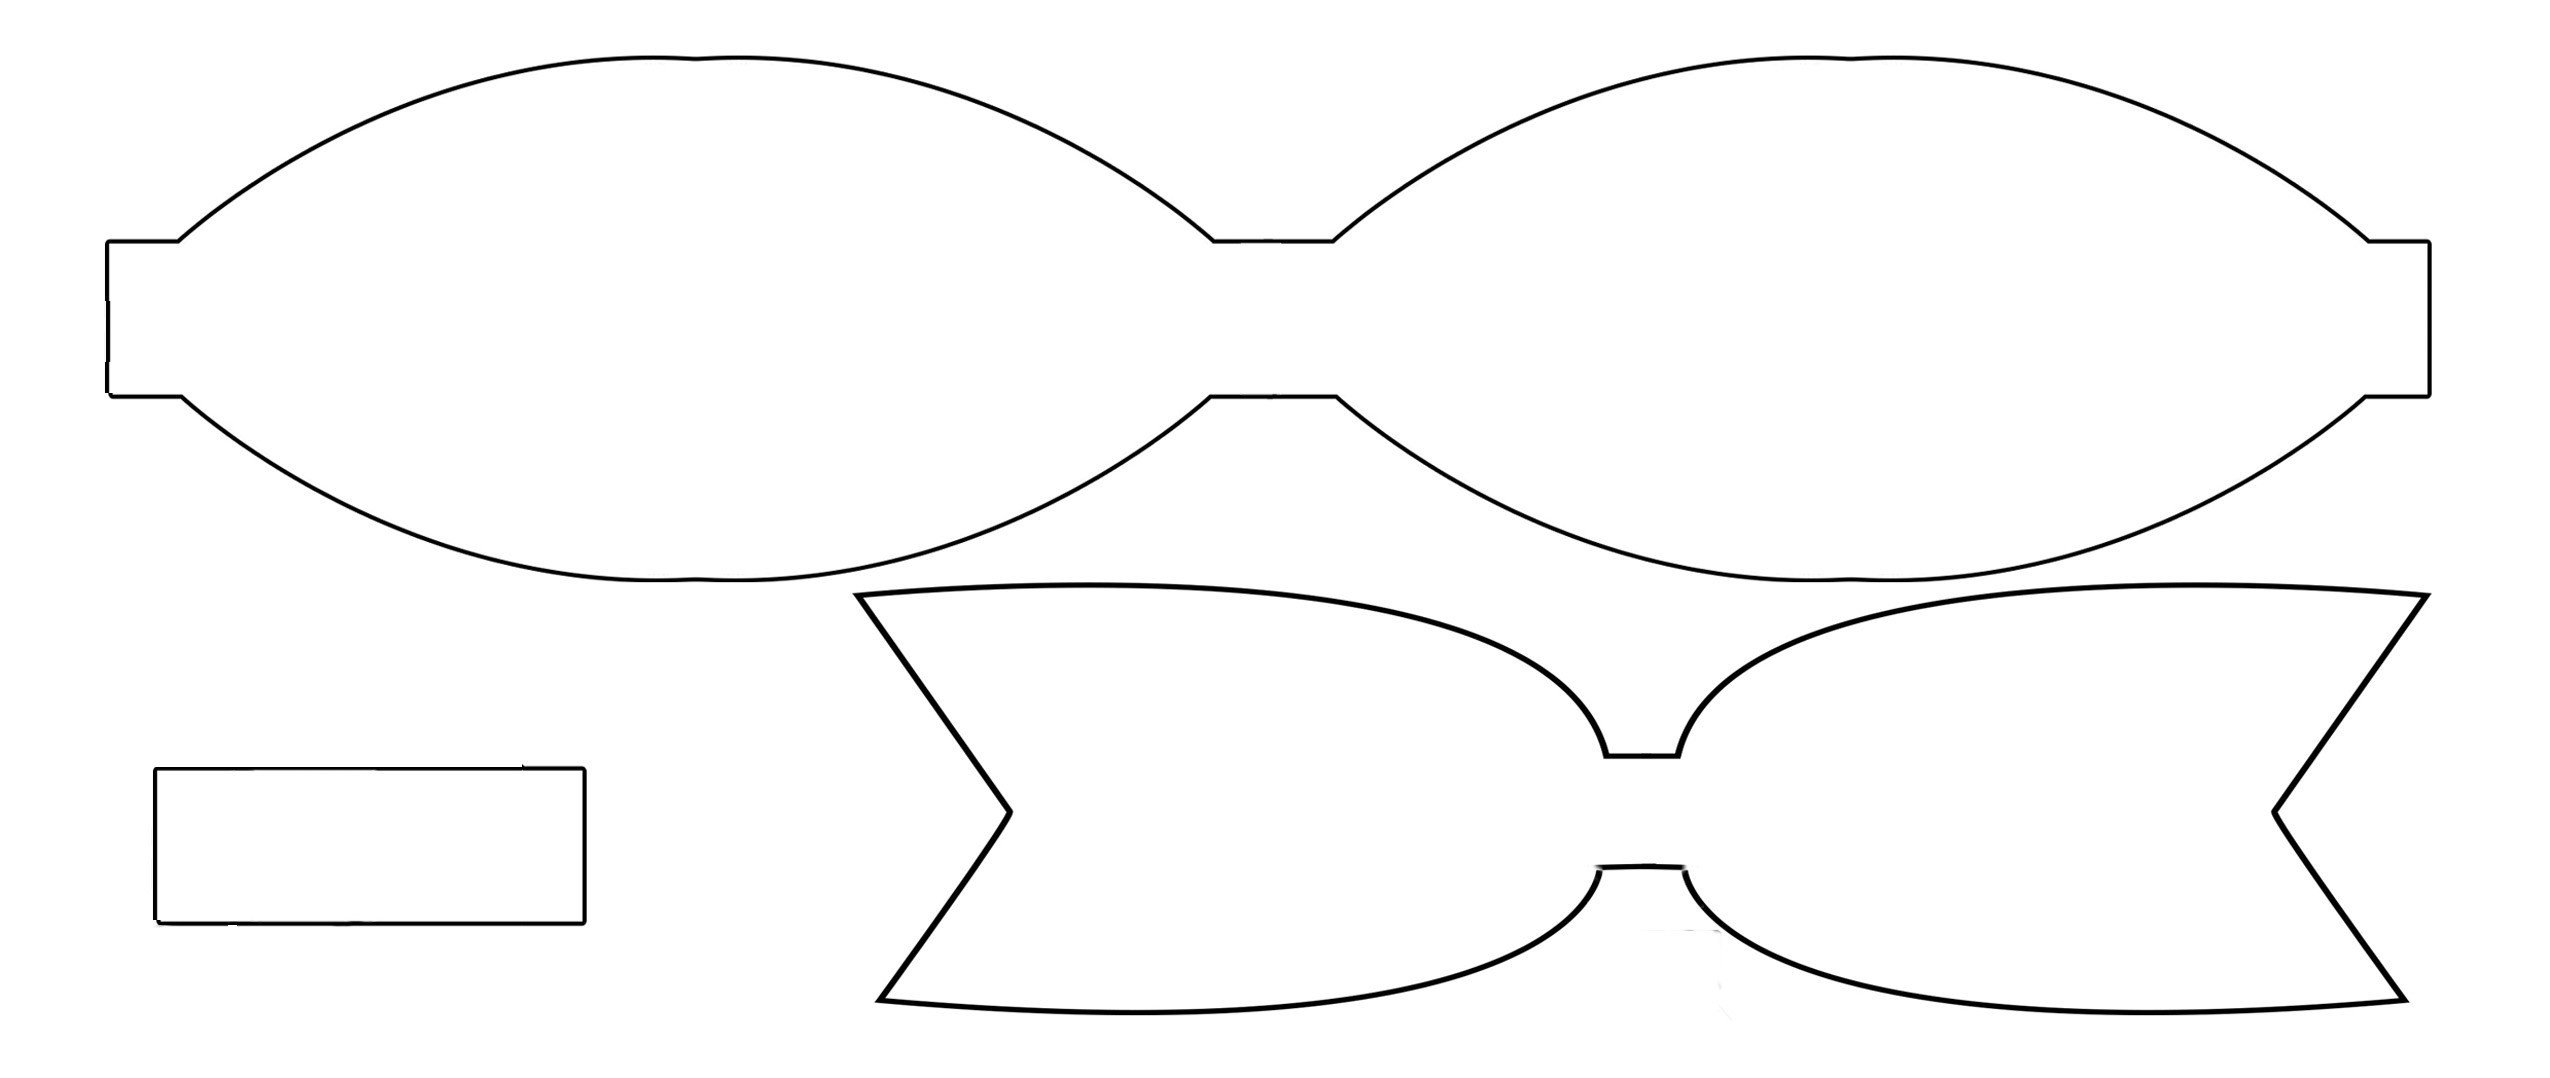 Bow Tie Template Printable Paper Bow Tie Template Printable – Ezzy